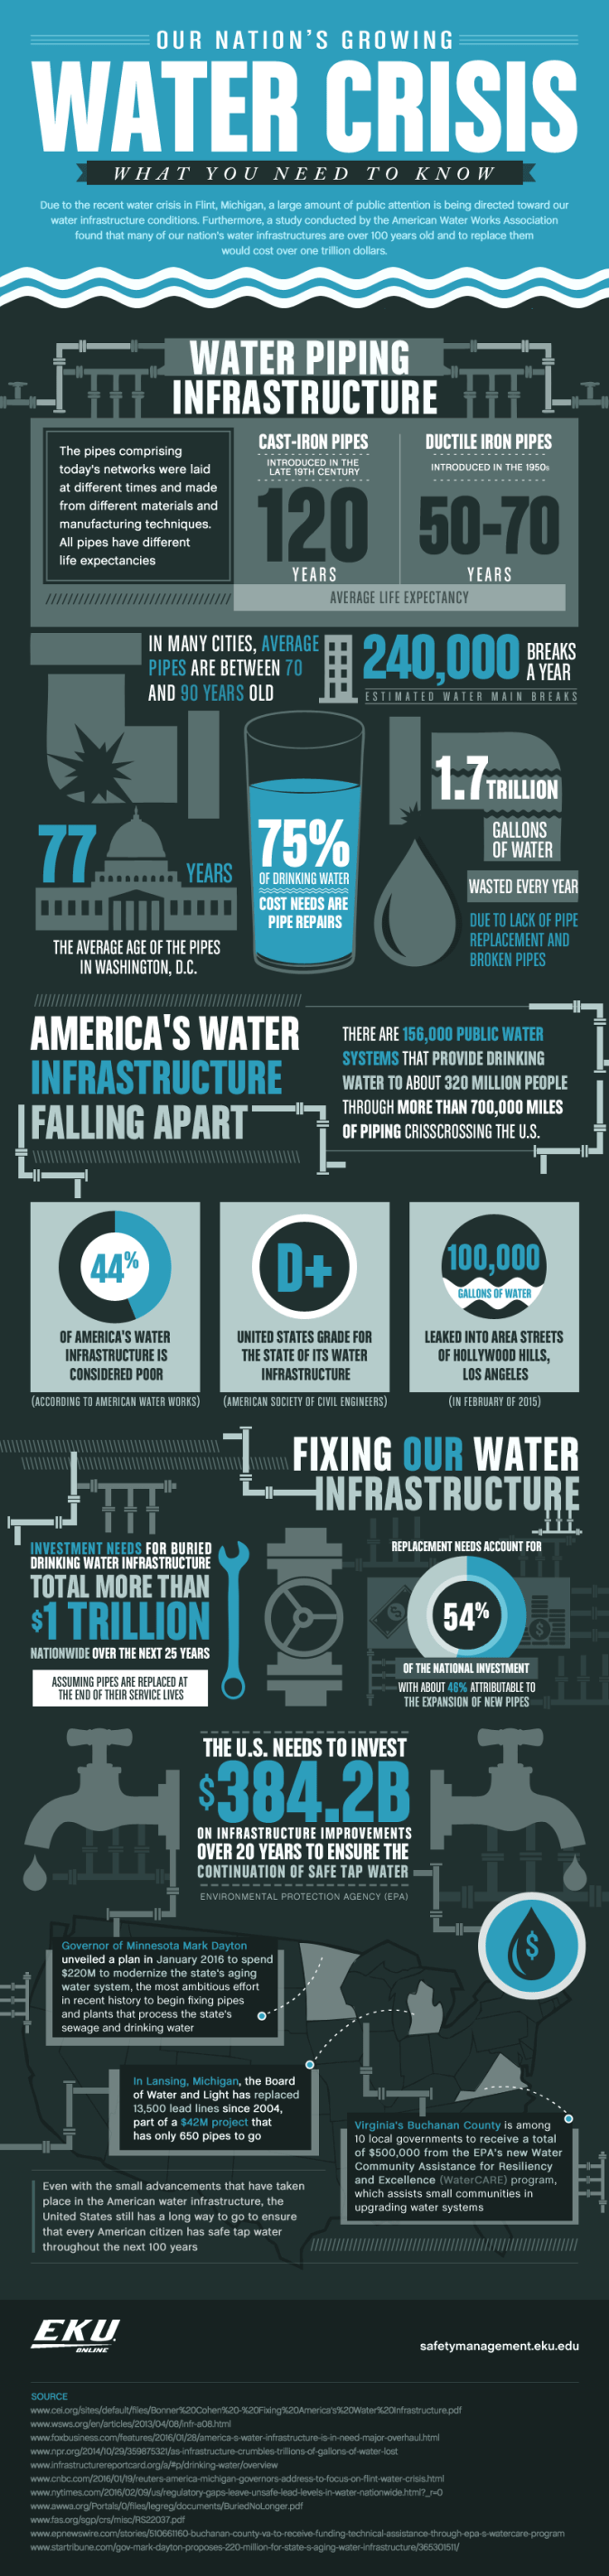 How Flint's water crisis is impacting the nation's water infrastructure